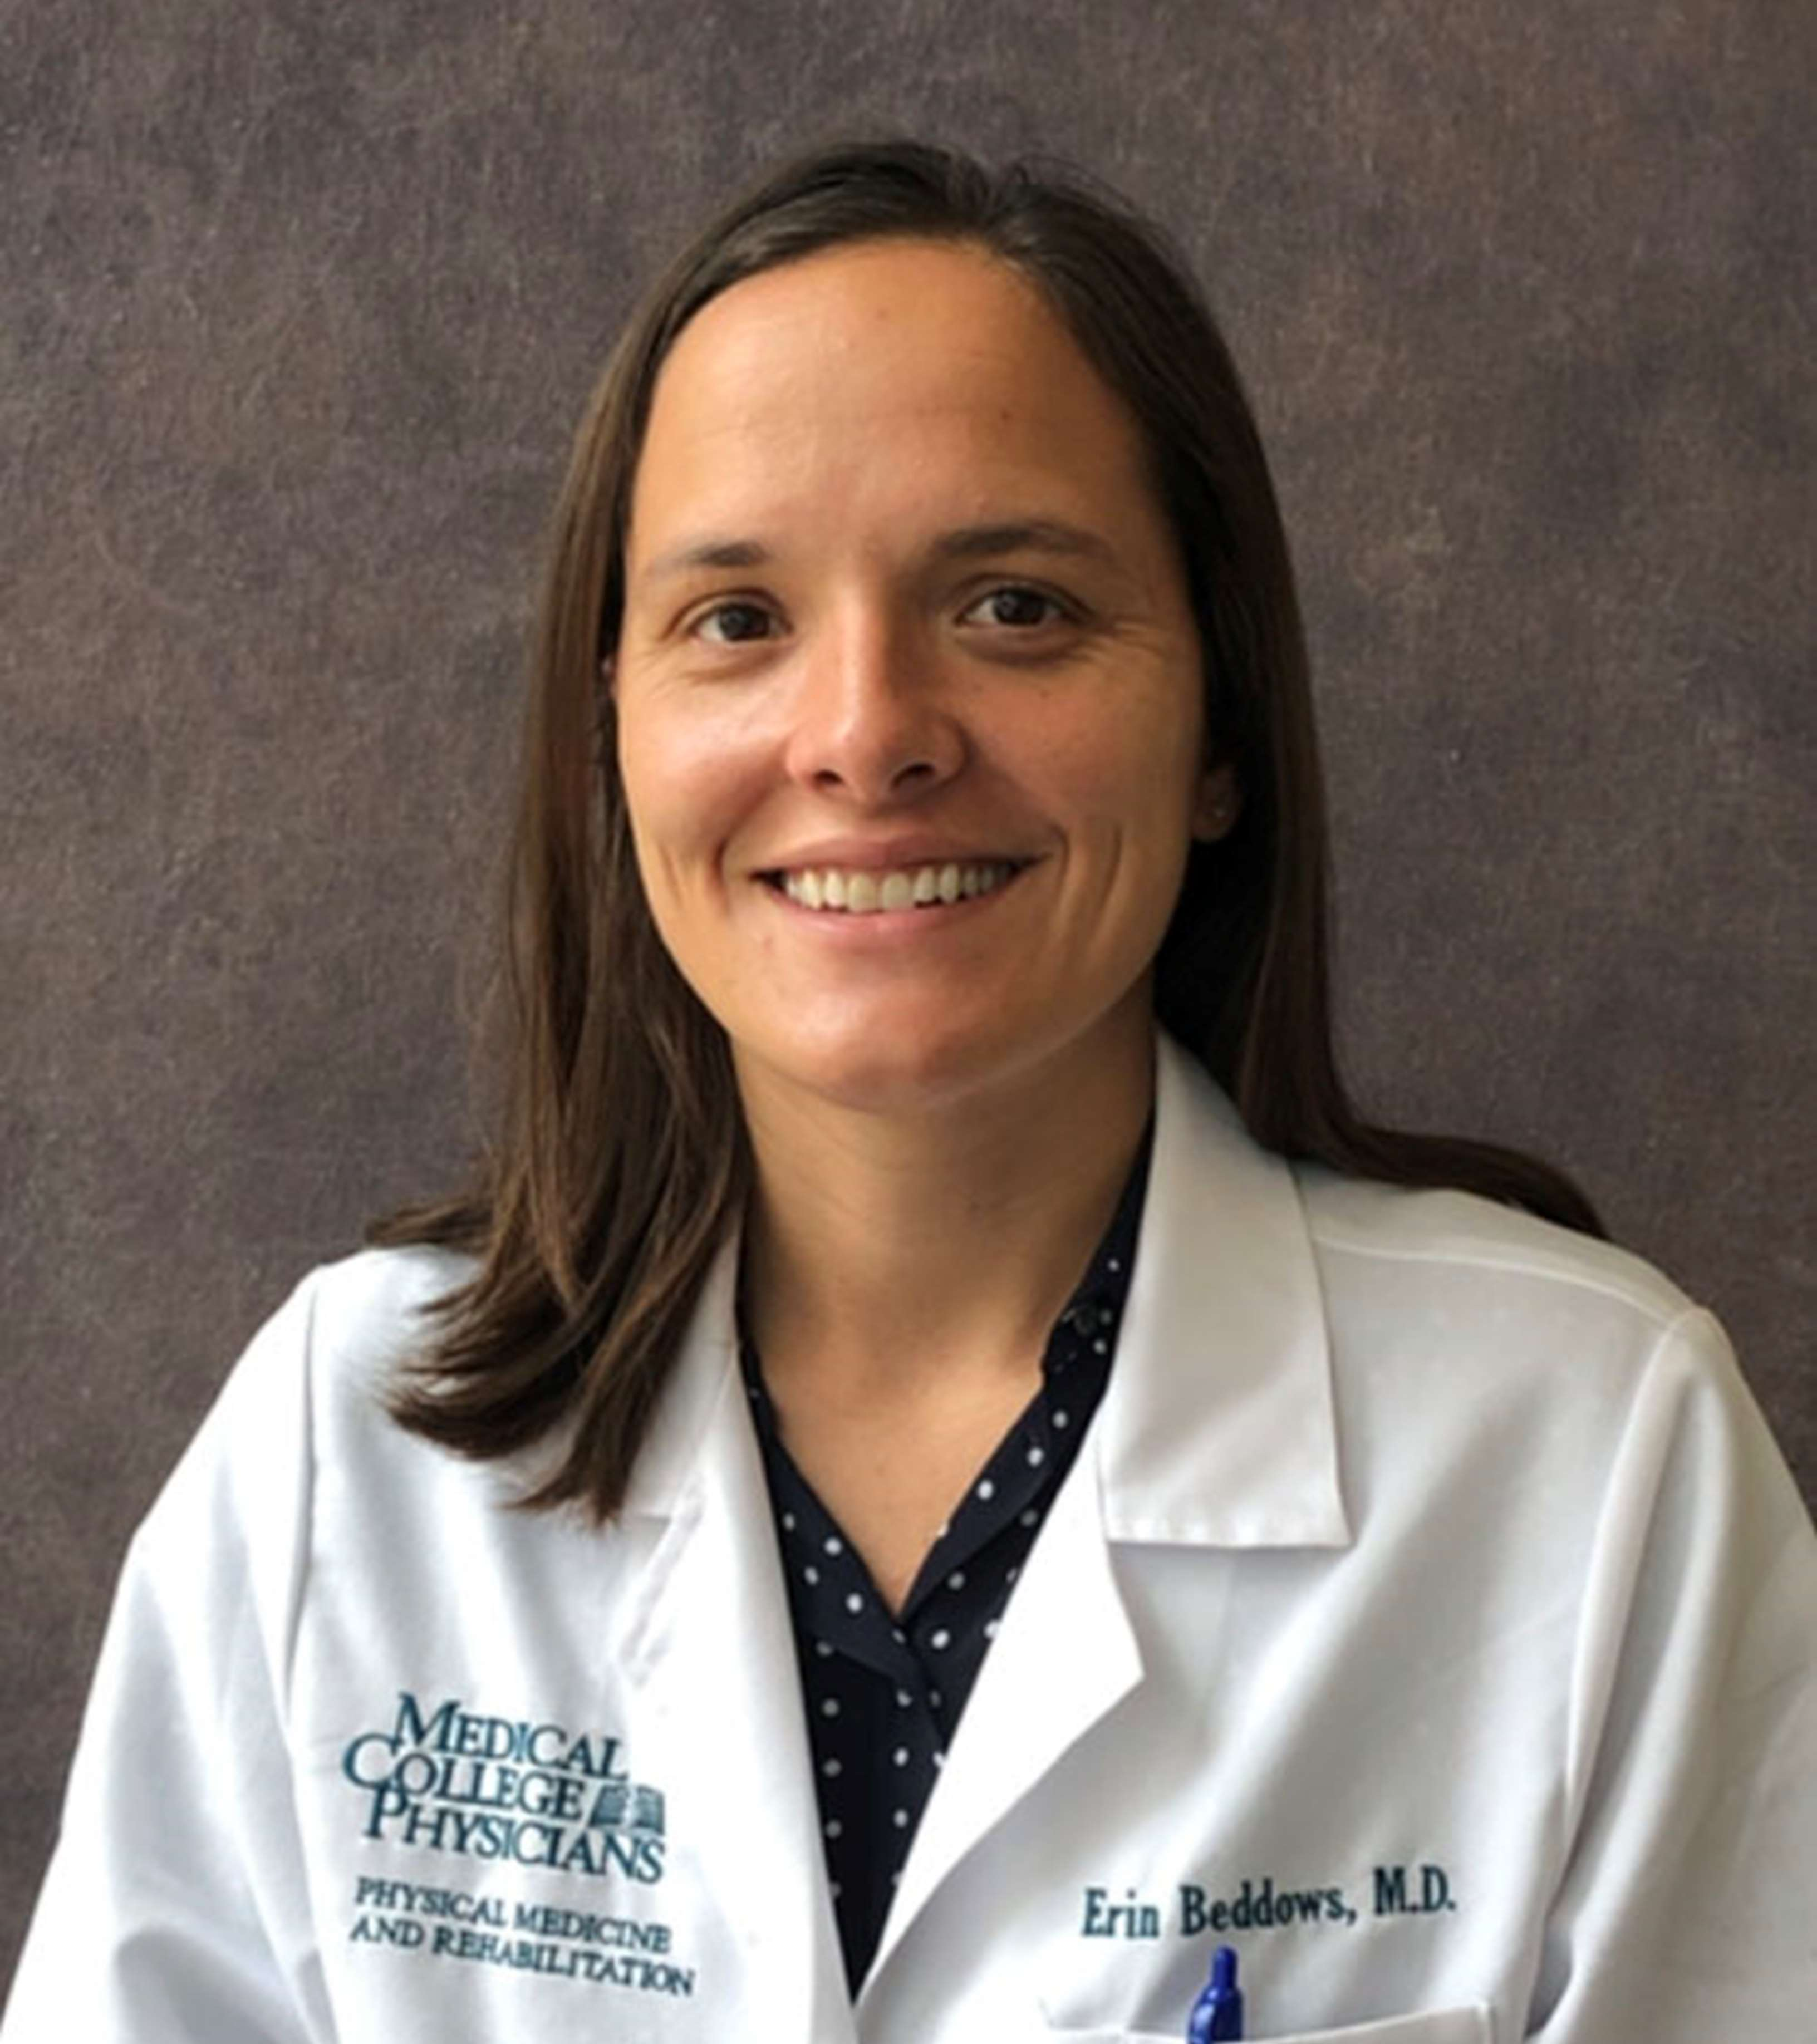 Erin Beddows, MD